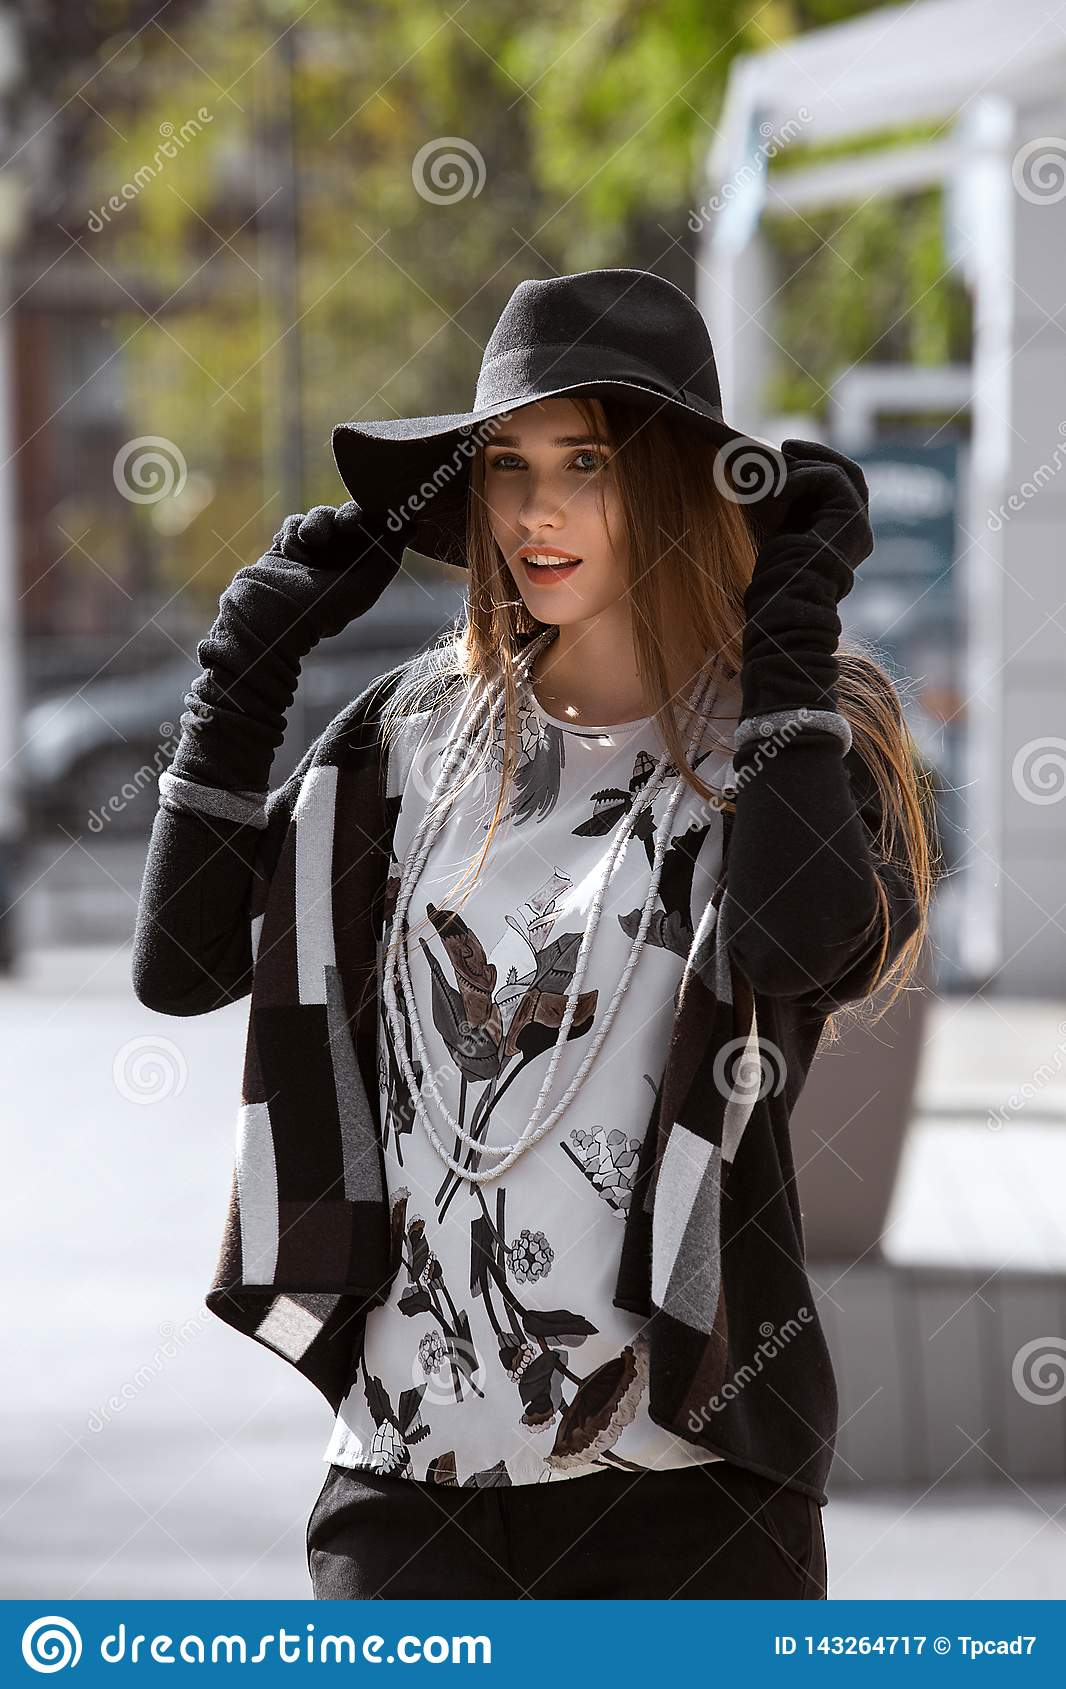 Fashionable girl dressed in black trousers, a stylish gray shirt and sweater and in a black hat with wide brim walks in